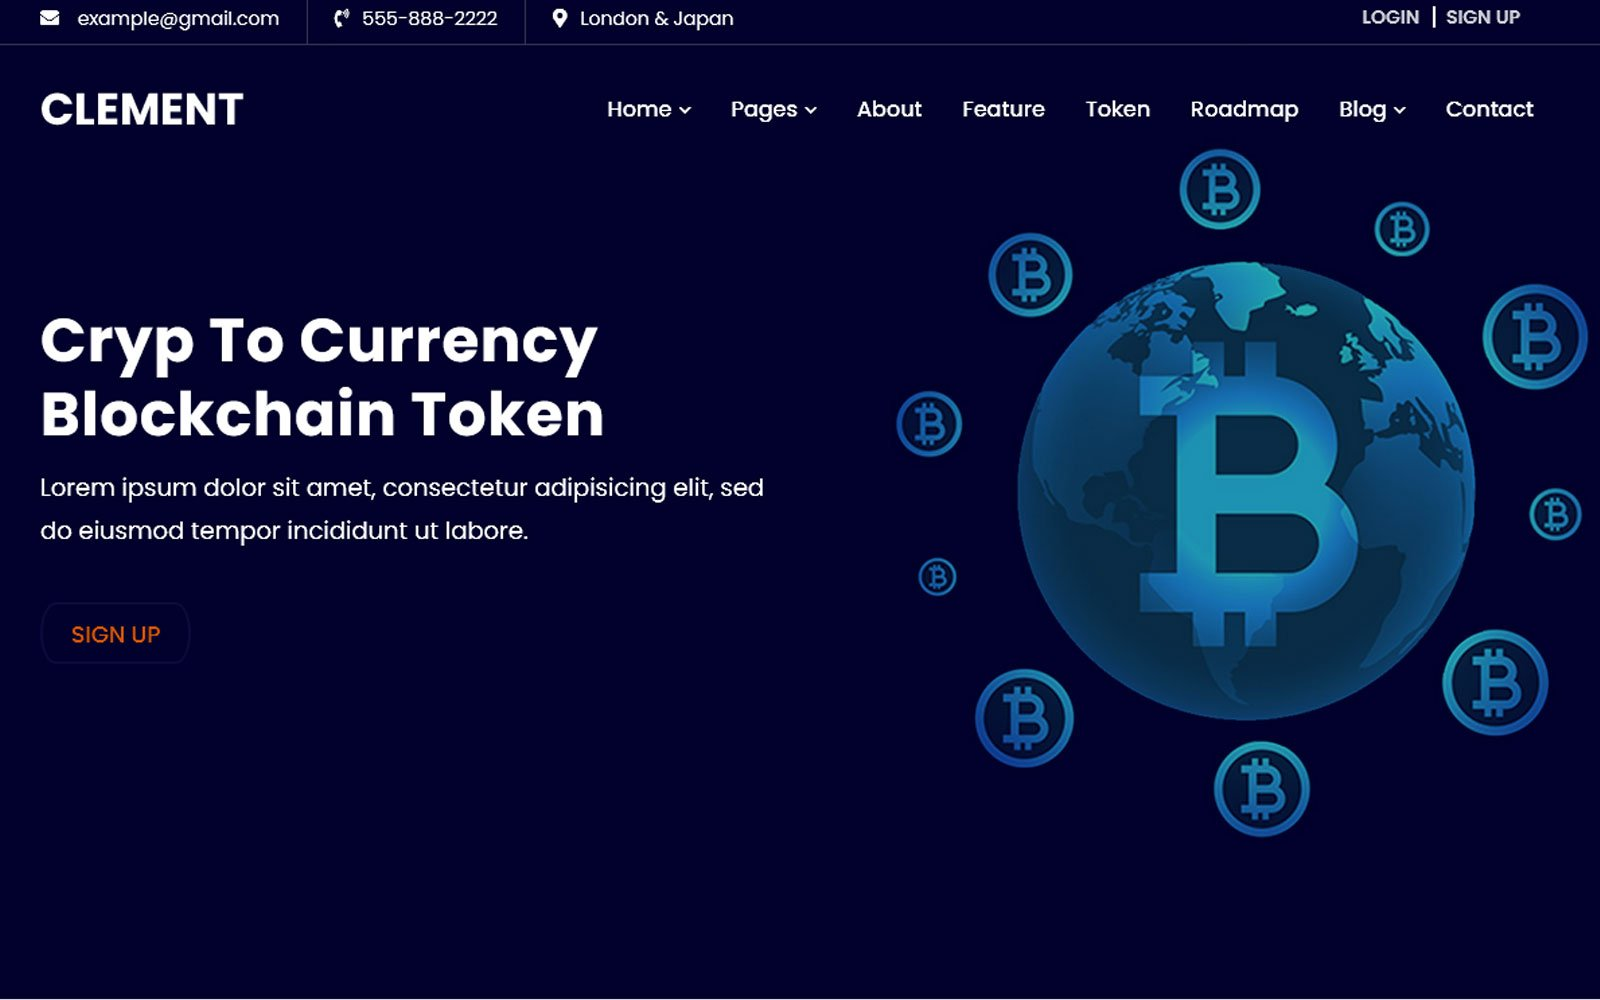 Clement -ICO Bitcoin & Cryptocurrency Website Template